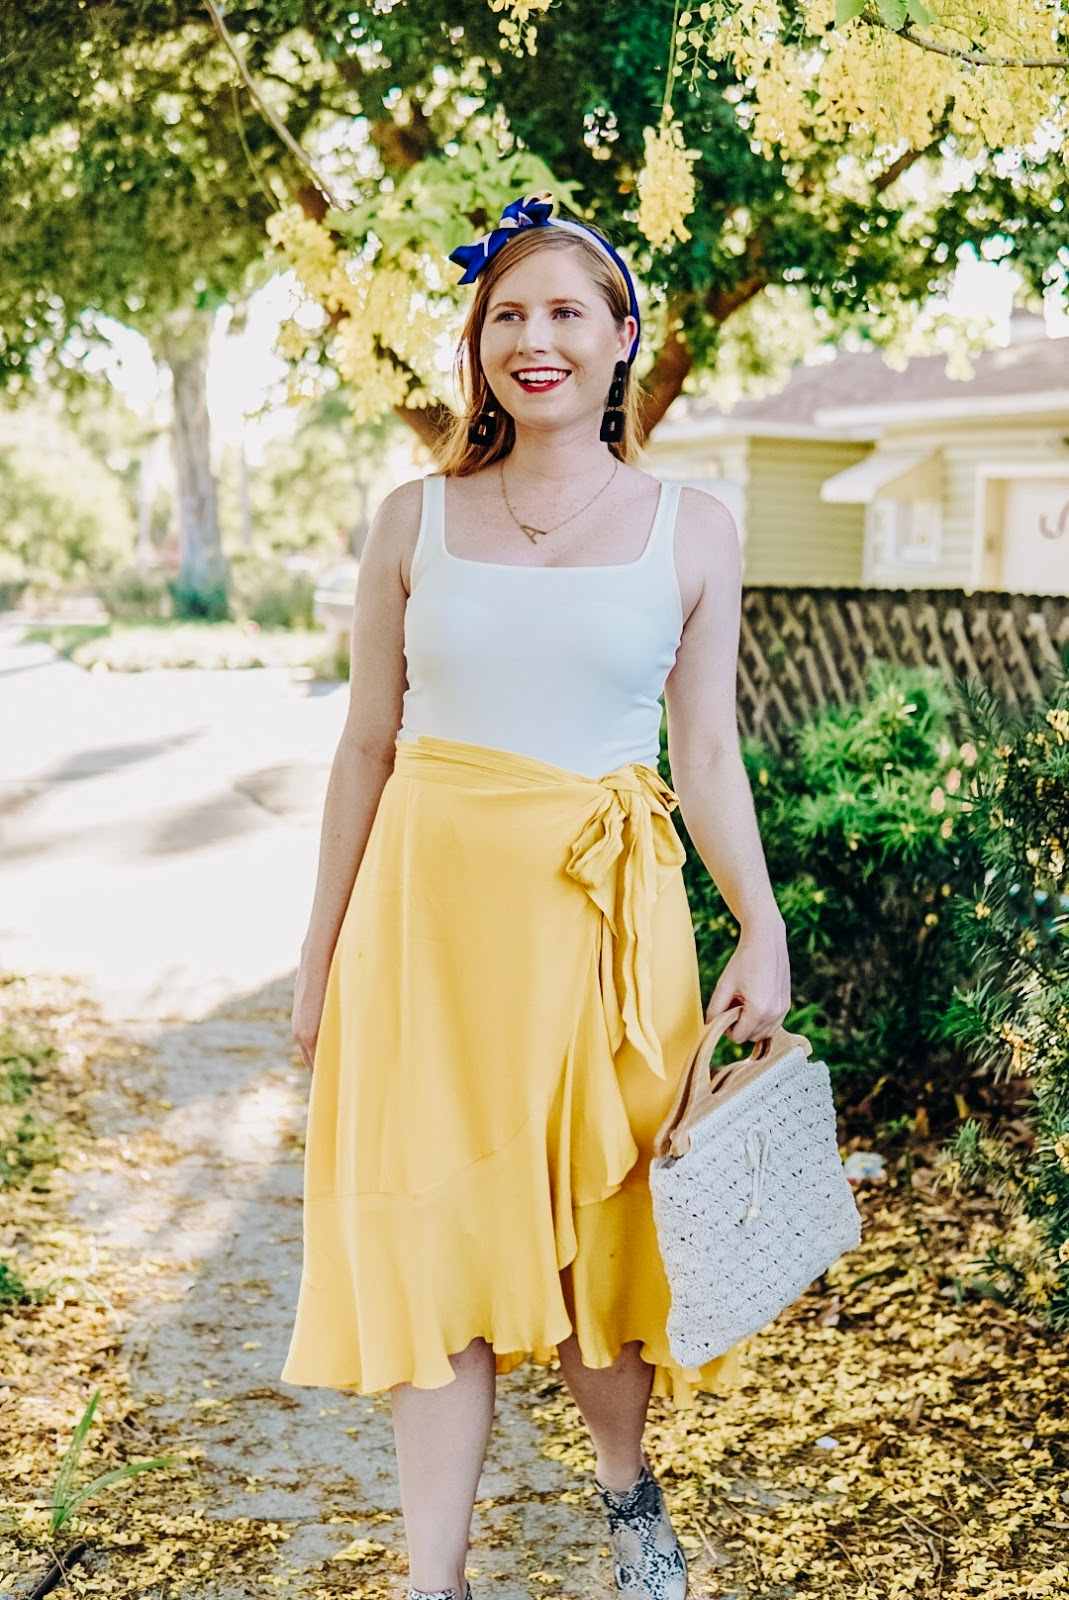 Styling a Casual Yellow Wrap Midi Skirt for Summer | Affordable by Amanda Tampa Blogger | Misred Outfitters Boutique Shopping